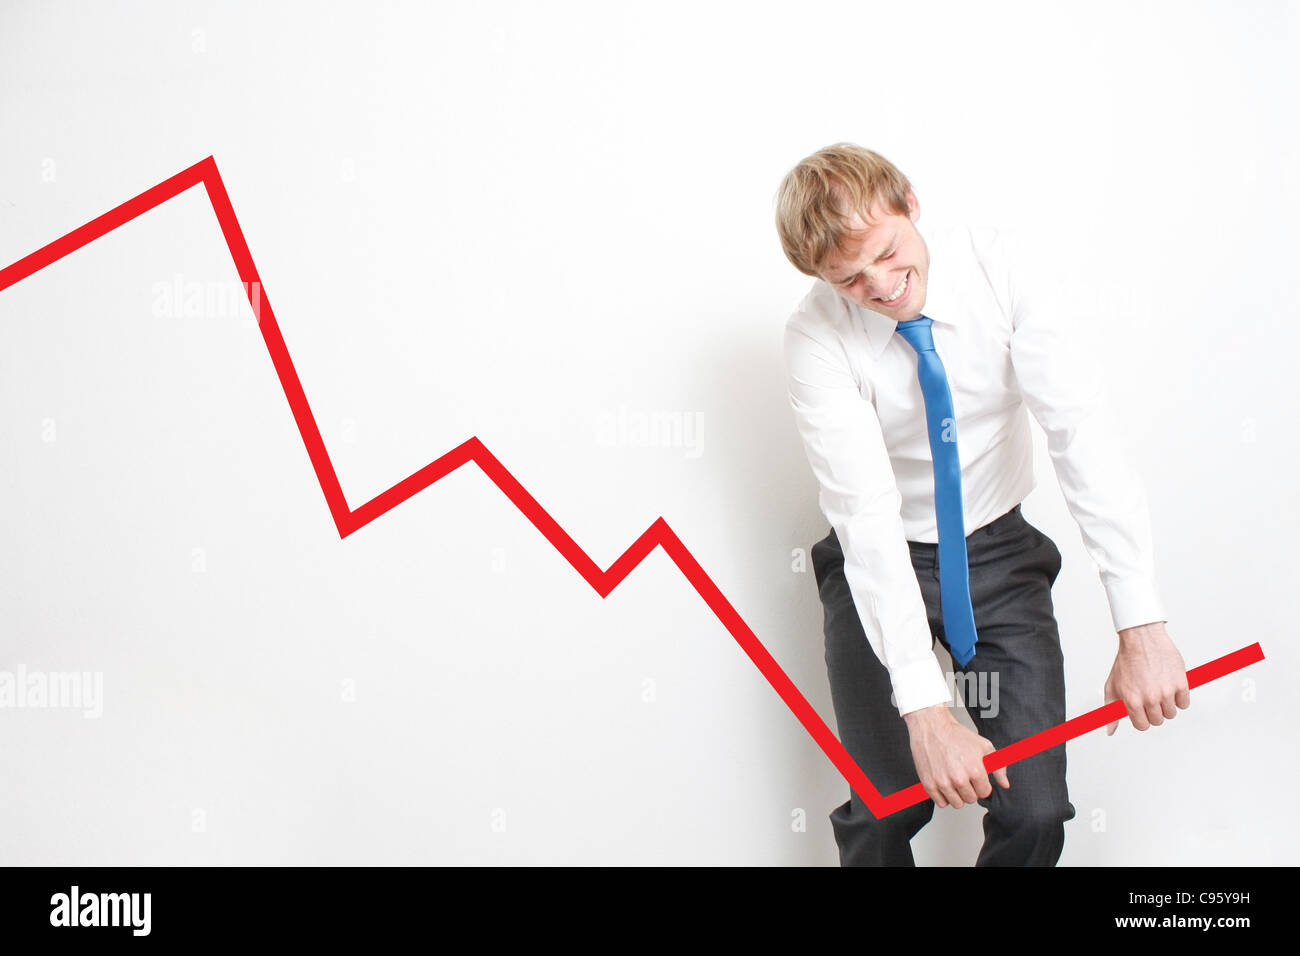 Business man trying to save the downturn - Stock Image